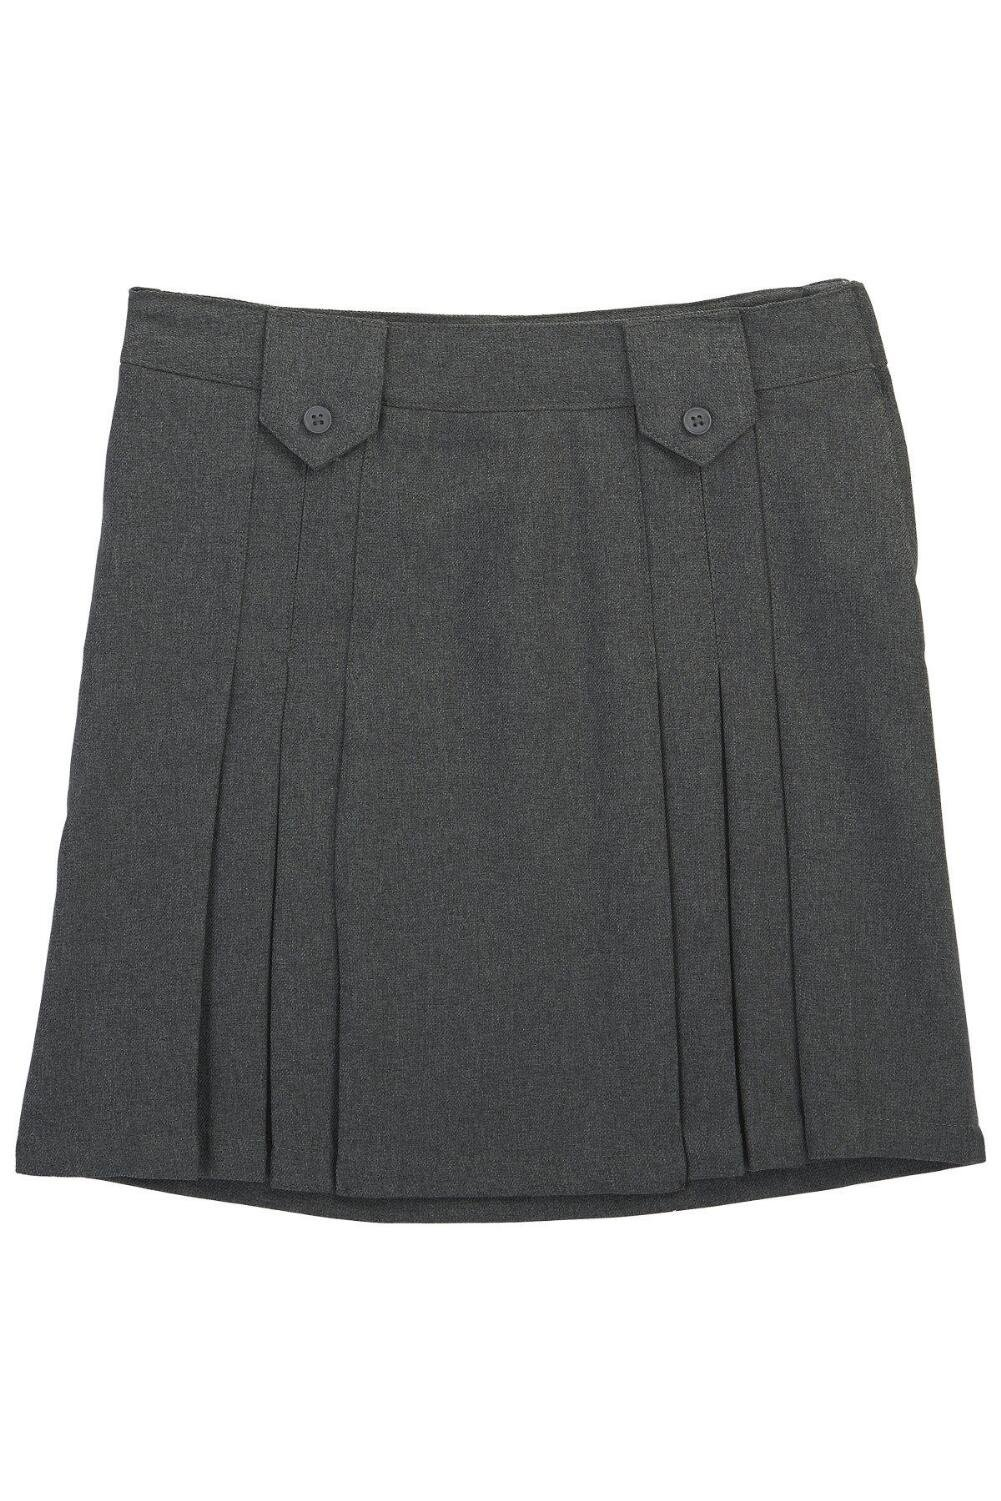 French Toast Big Girls' Front Pleated Tab Skirt, Heather Gray, 16